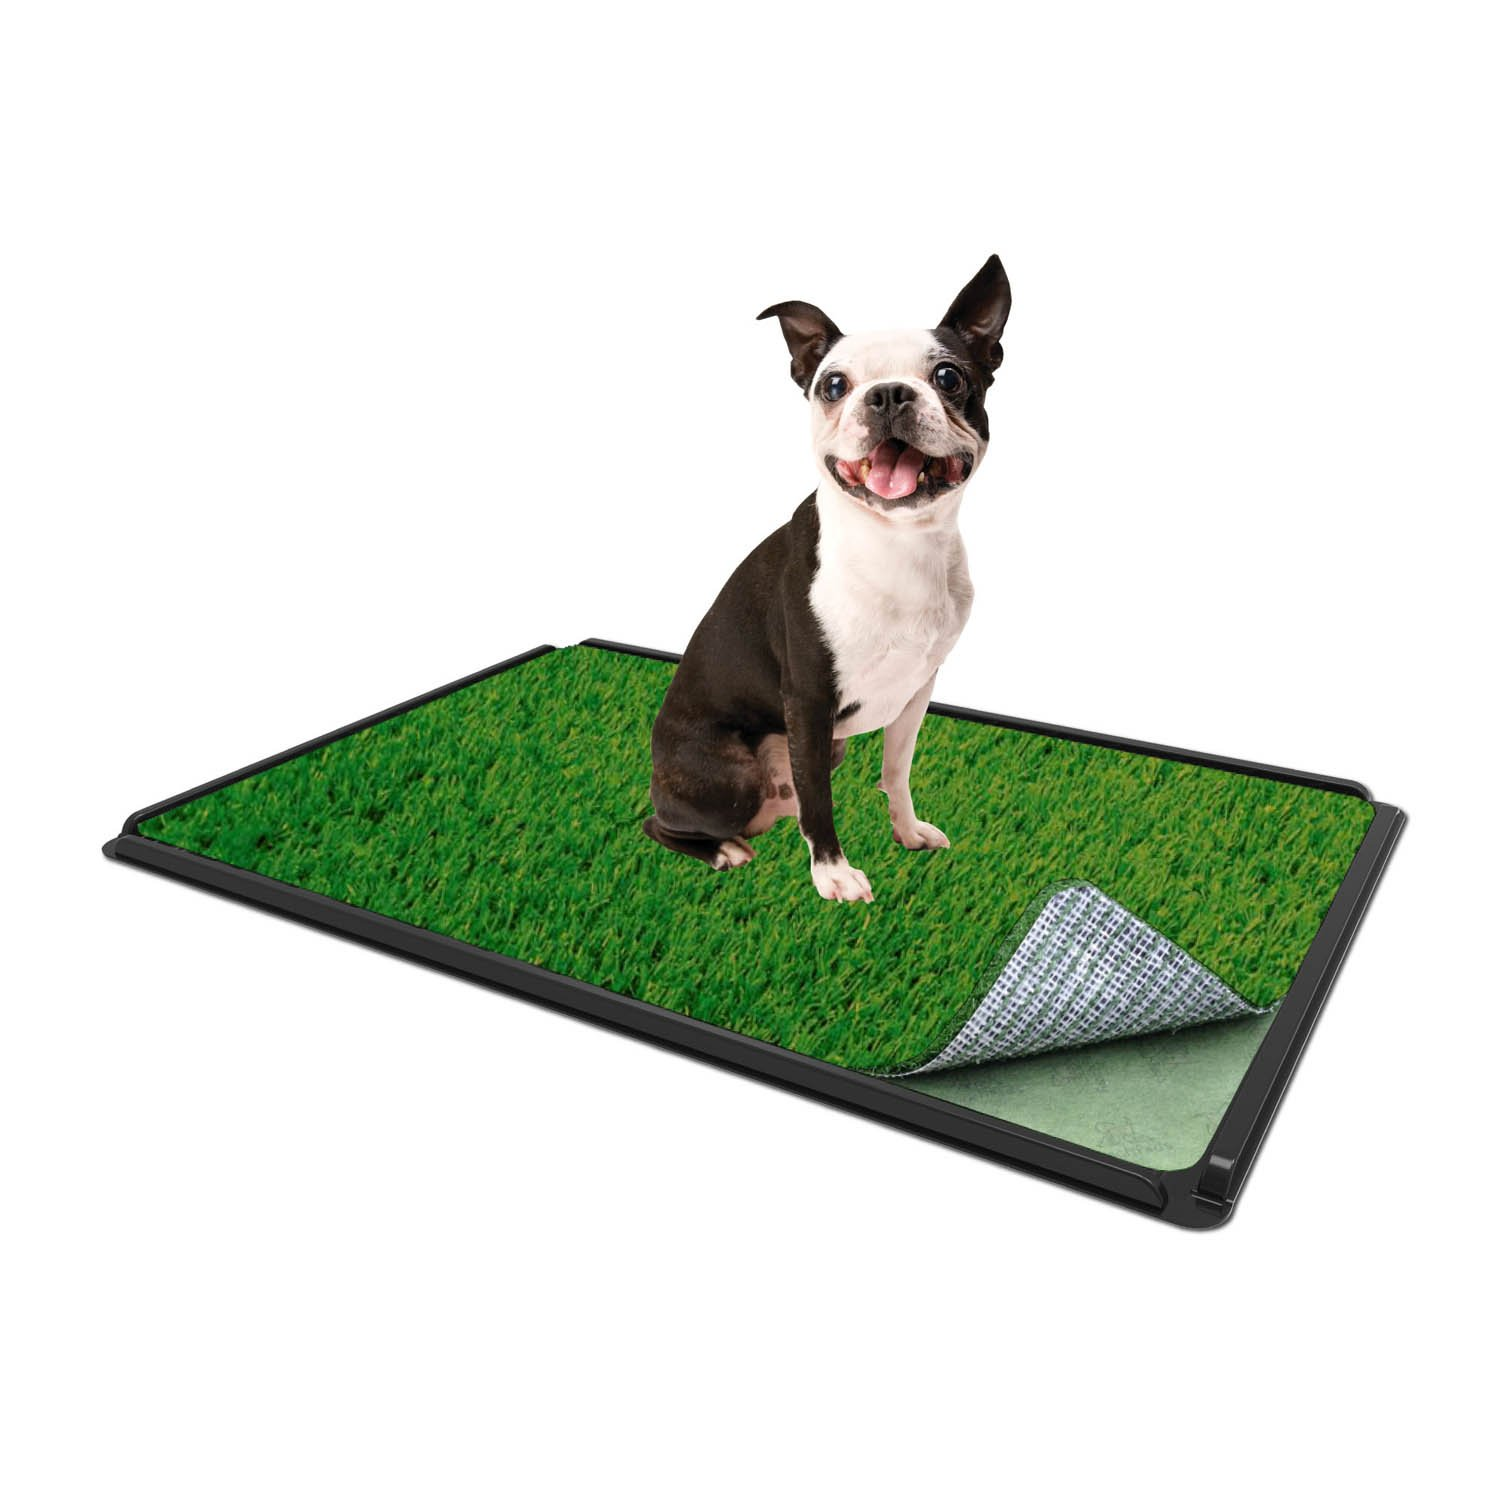 PoochPads Indoor Turf Dog Potty Plus